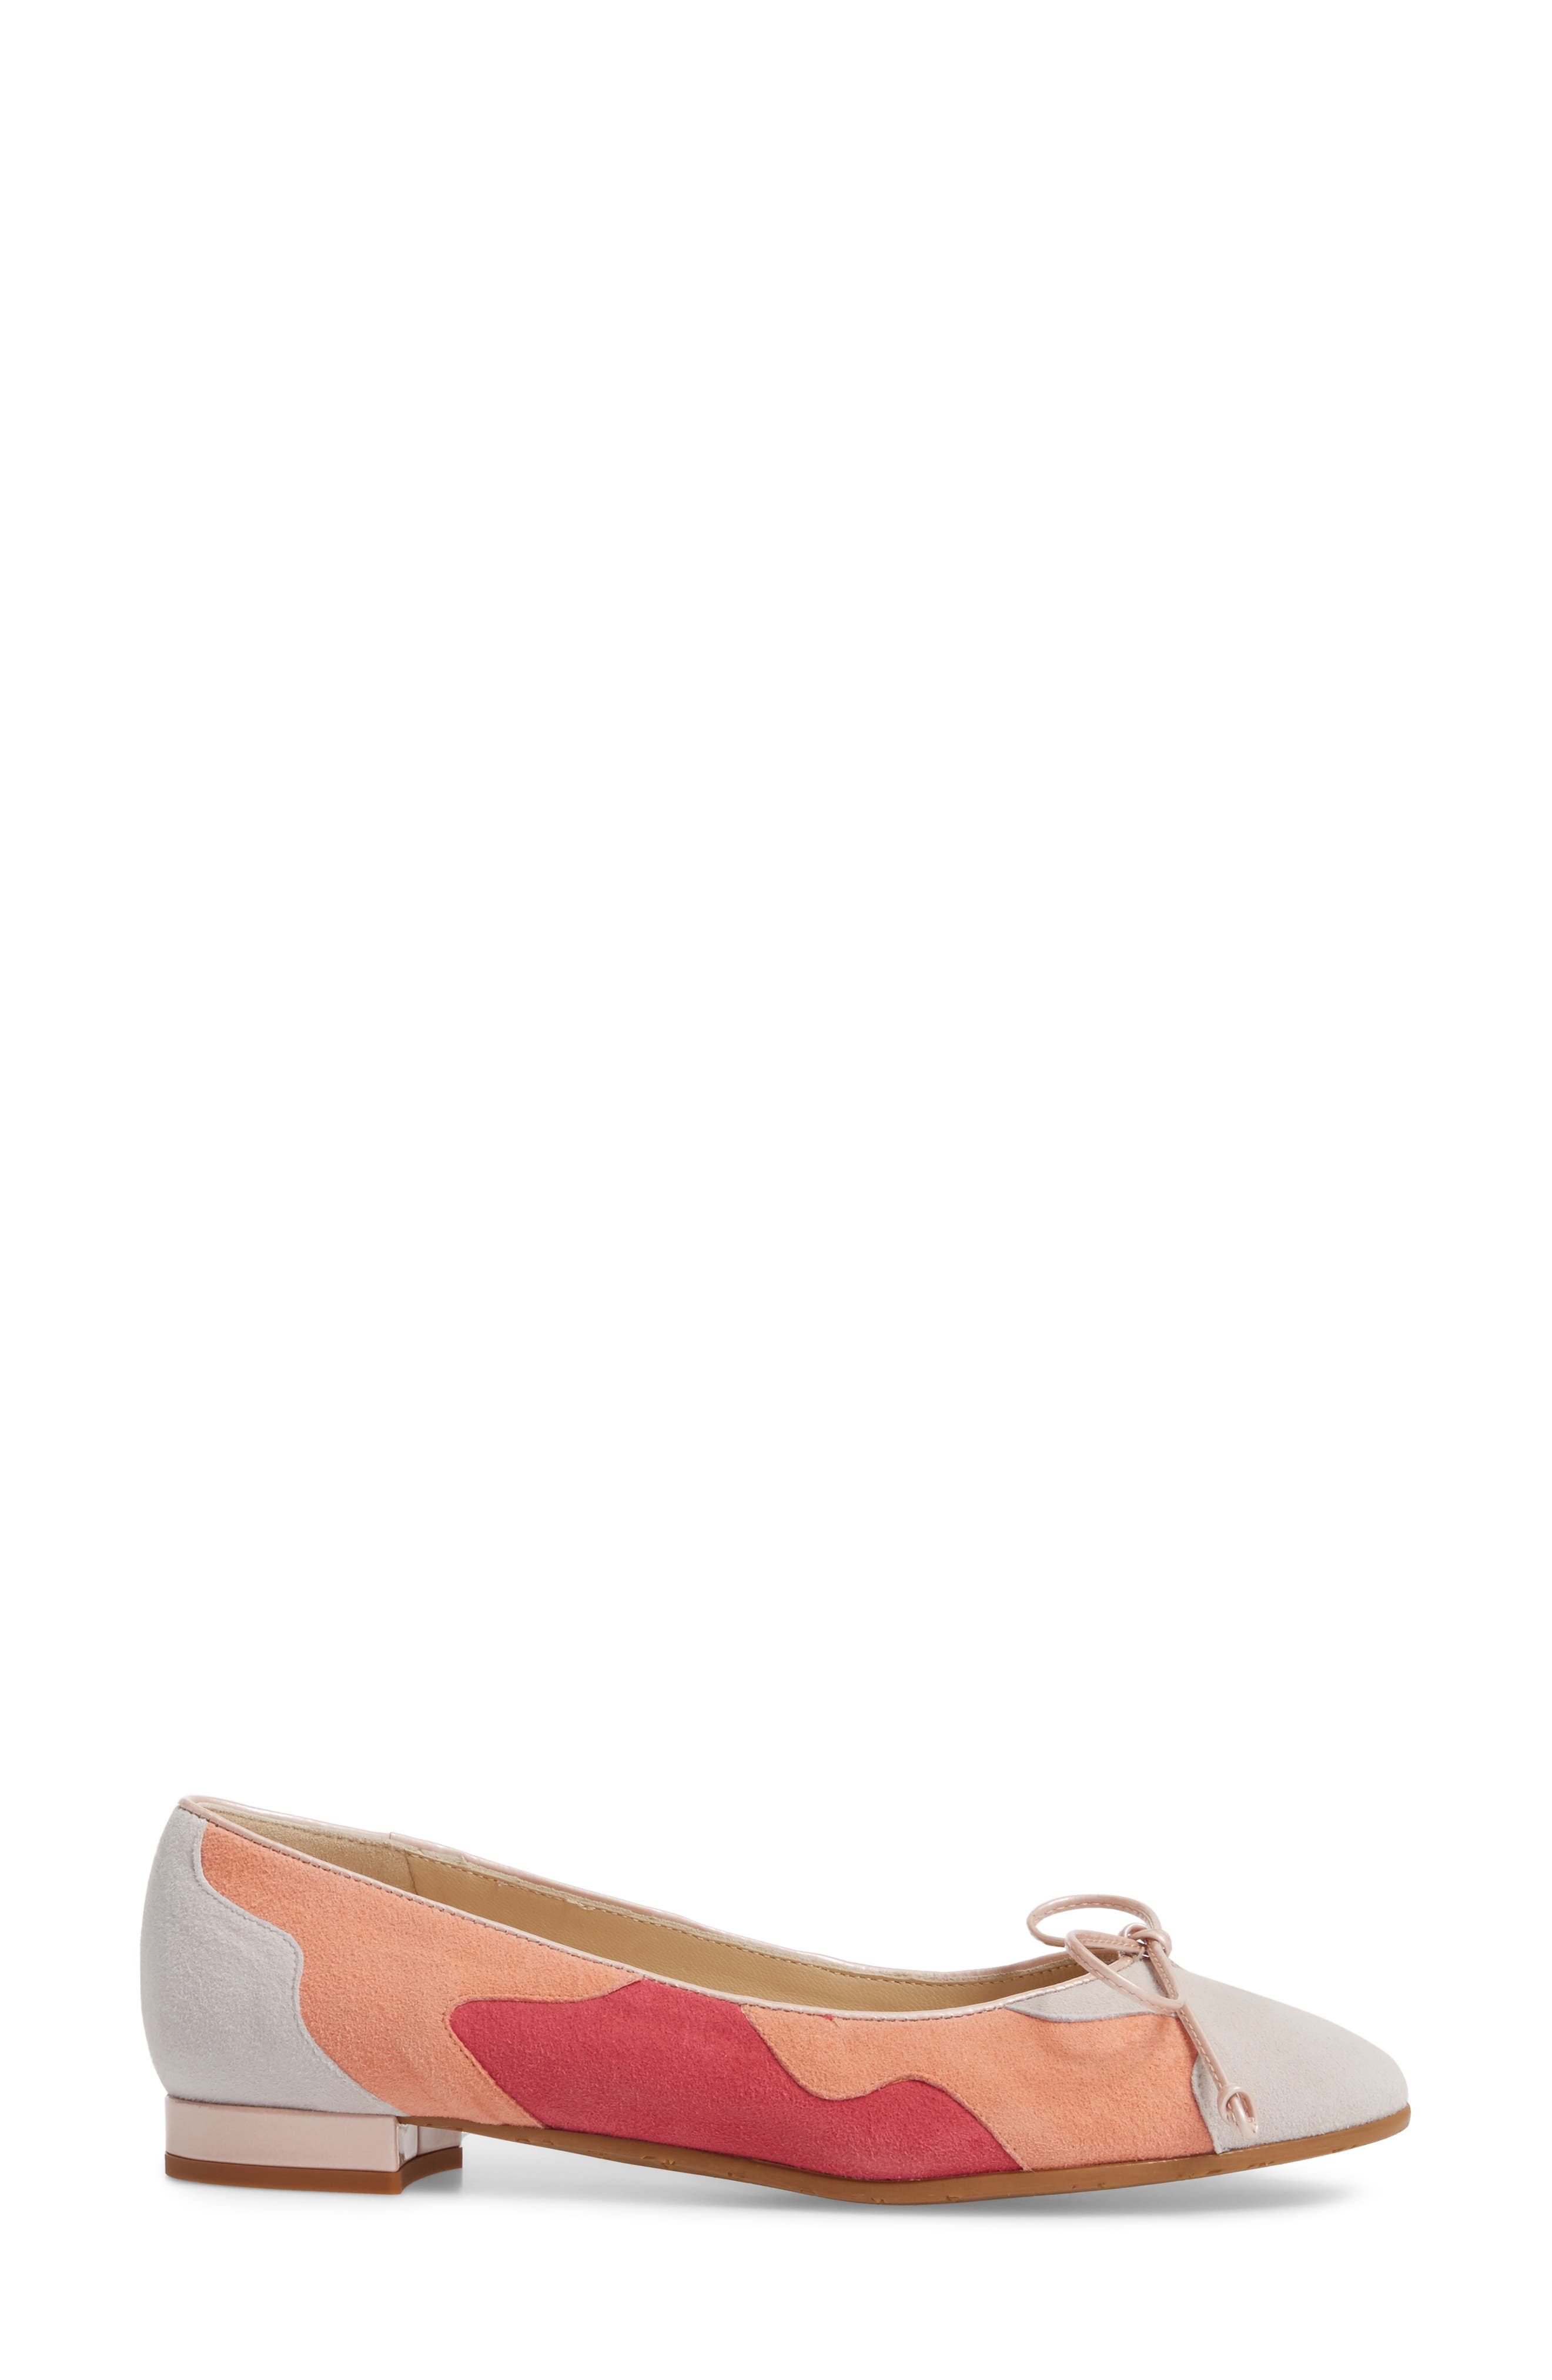 Ginevra Flat,                             Alternate thumbnail 3, color,                             BEIGE SUEDE